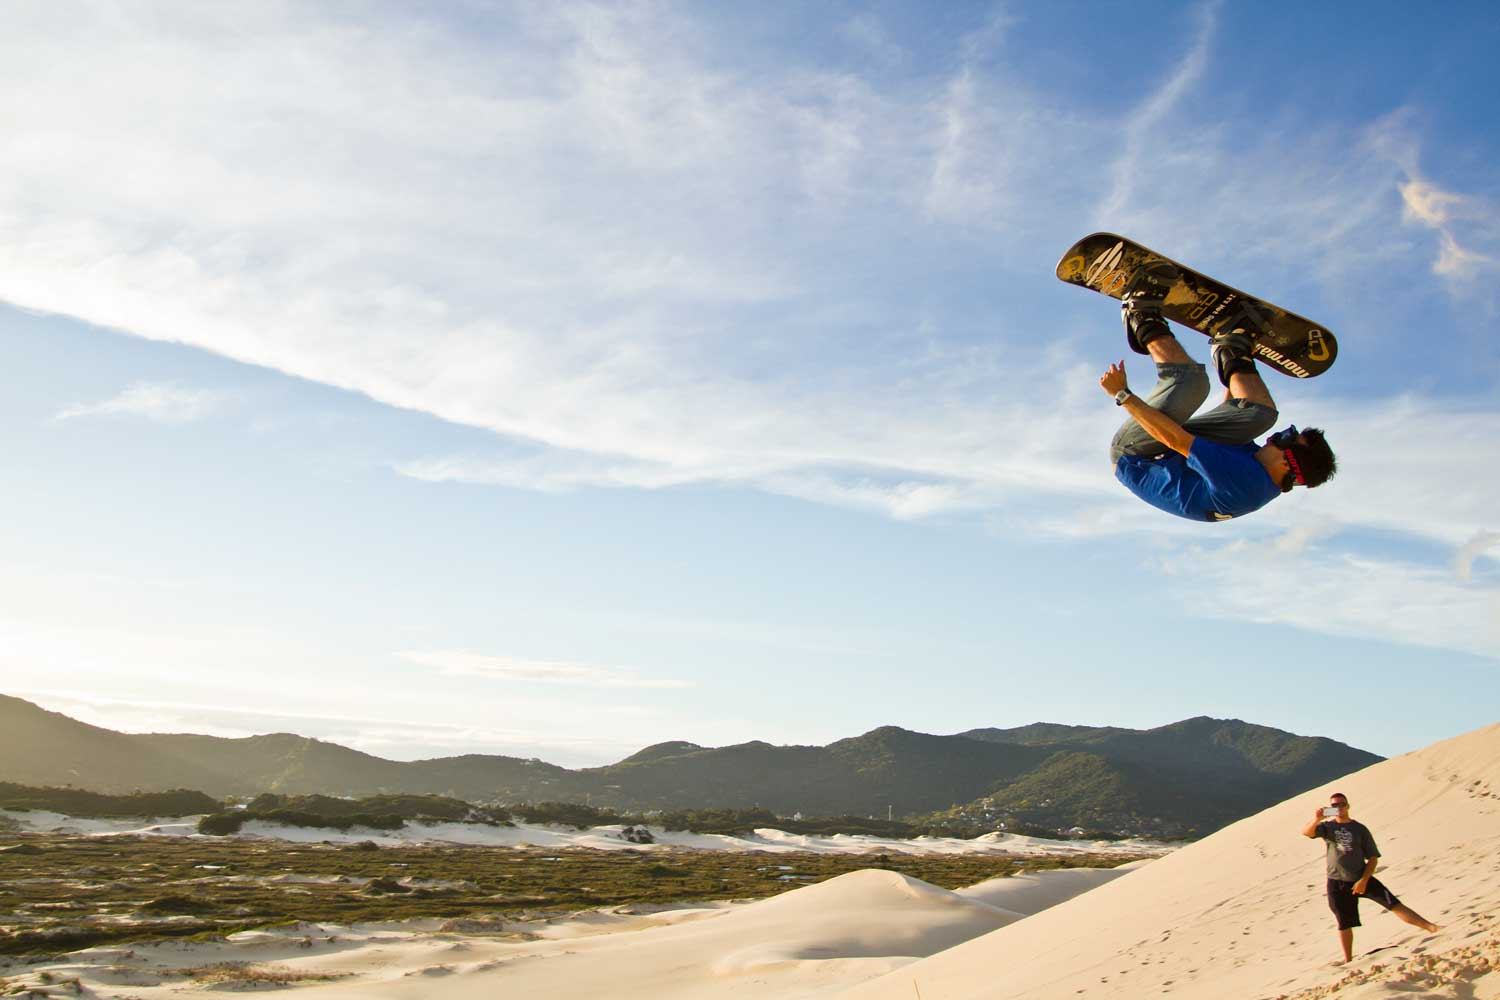 Sandboarding down the dunes of Joaquina Beach in Florianópolis, Brazil.